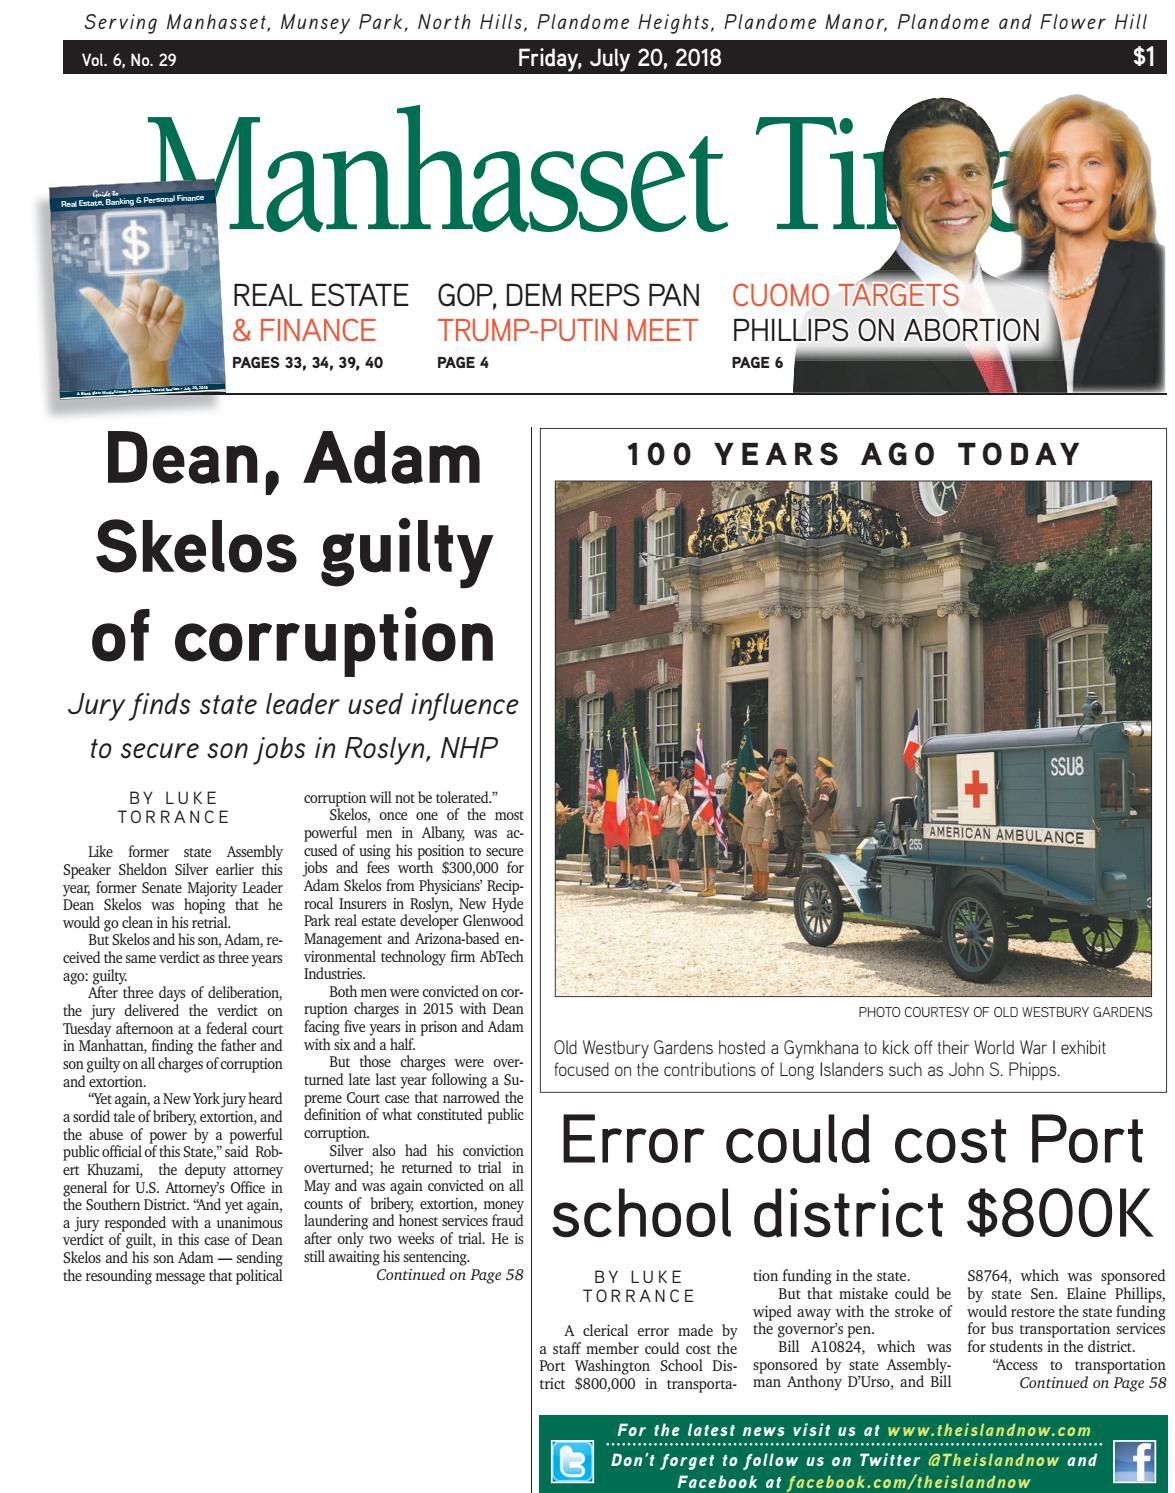 Manhasset Times 7 20 18 by The Island Now - issuu